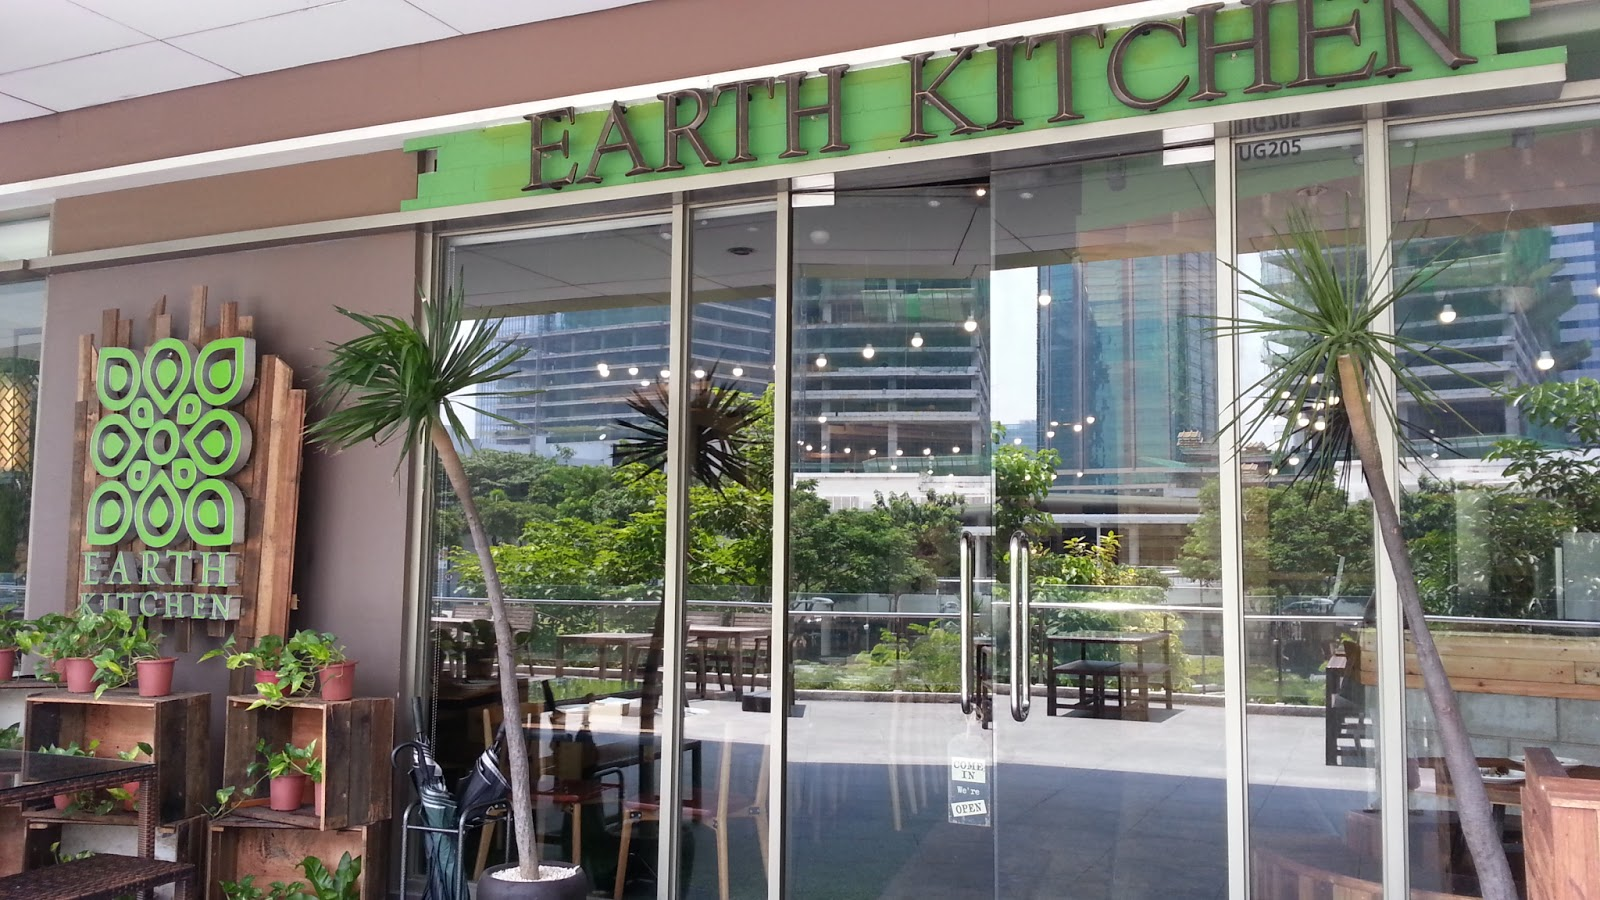 The Philippine Beat The Earth Kitchen Is Now In Bonifacio